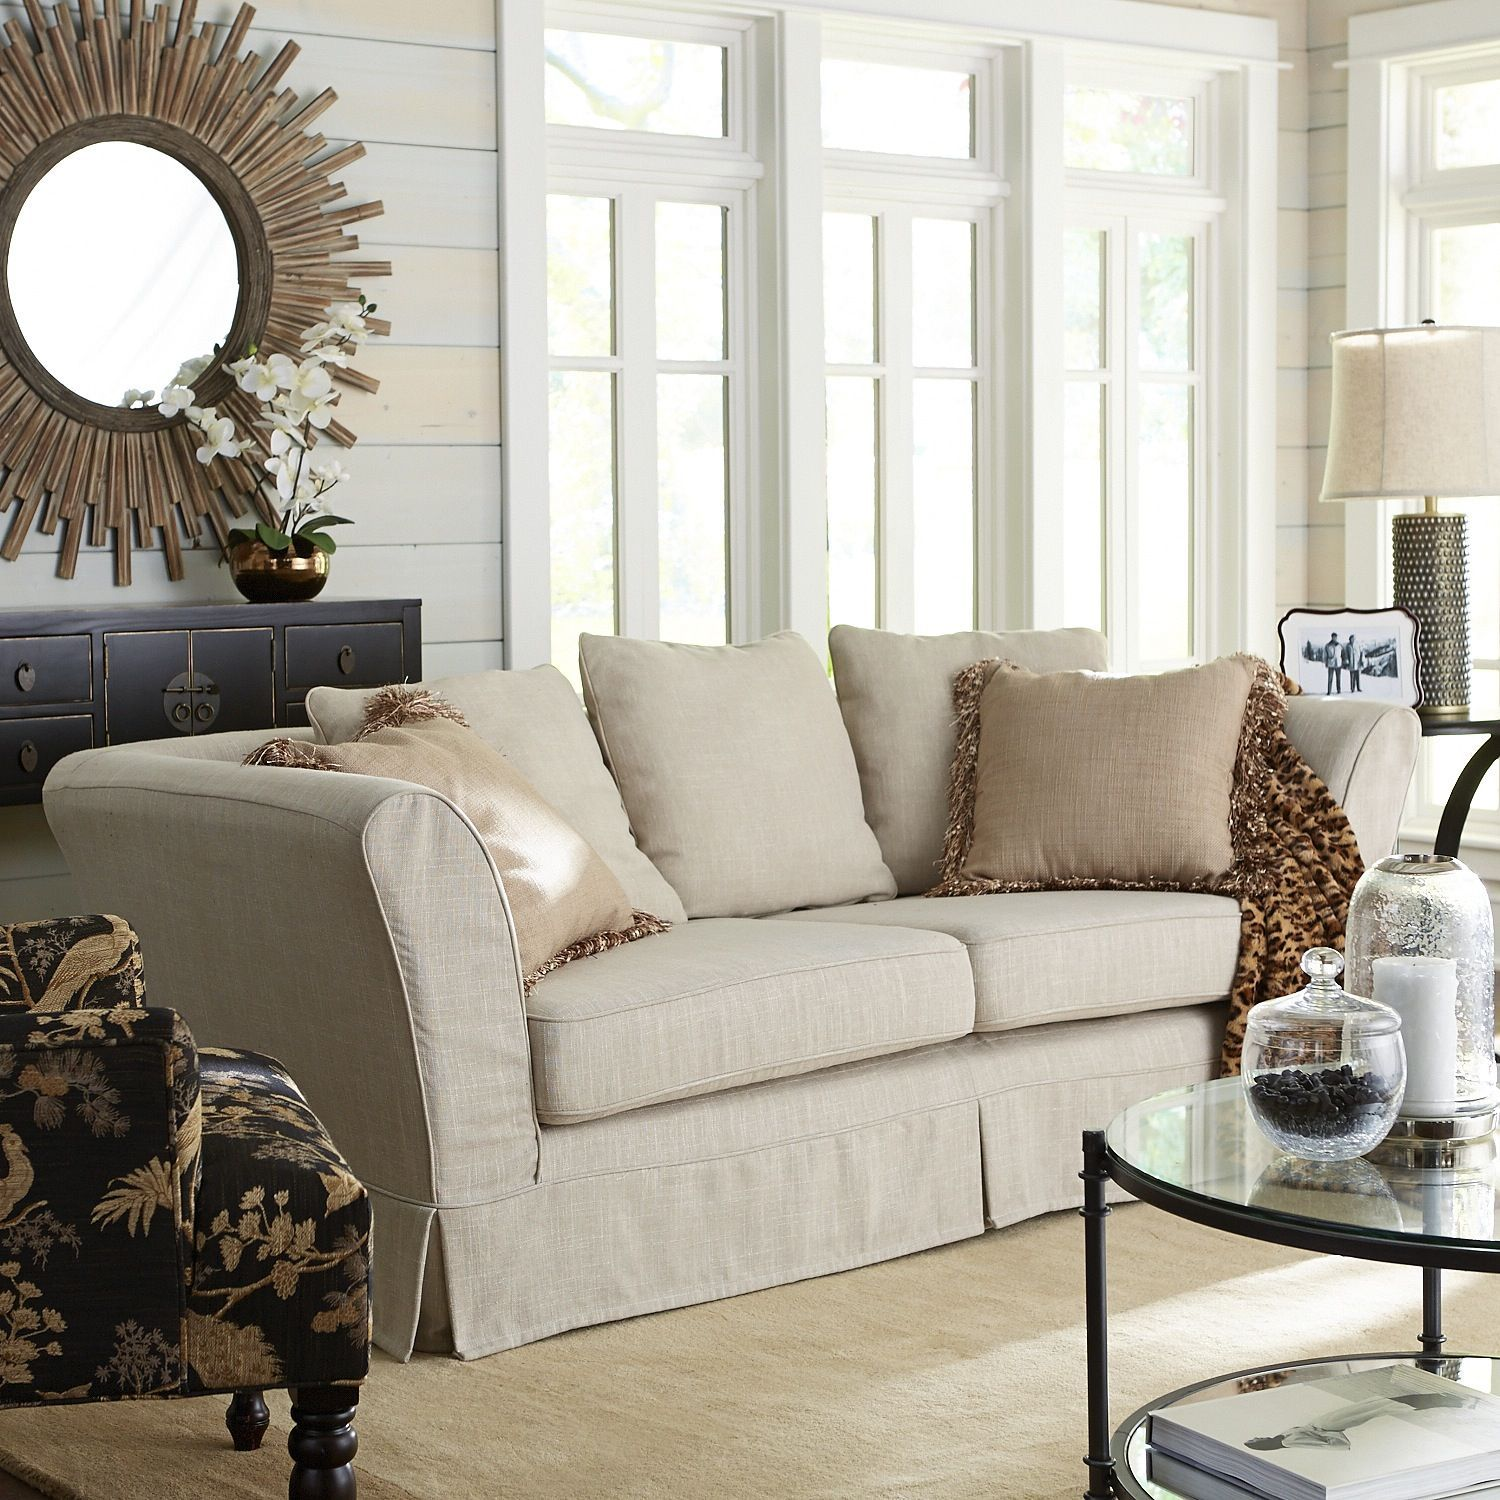 Excellent Portia Slipcovered Sofa Flax Pier 1 Imports Oui Sofa Ocoug Best Dining Table And Chair Ideas Images Ocougorg